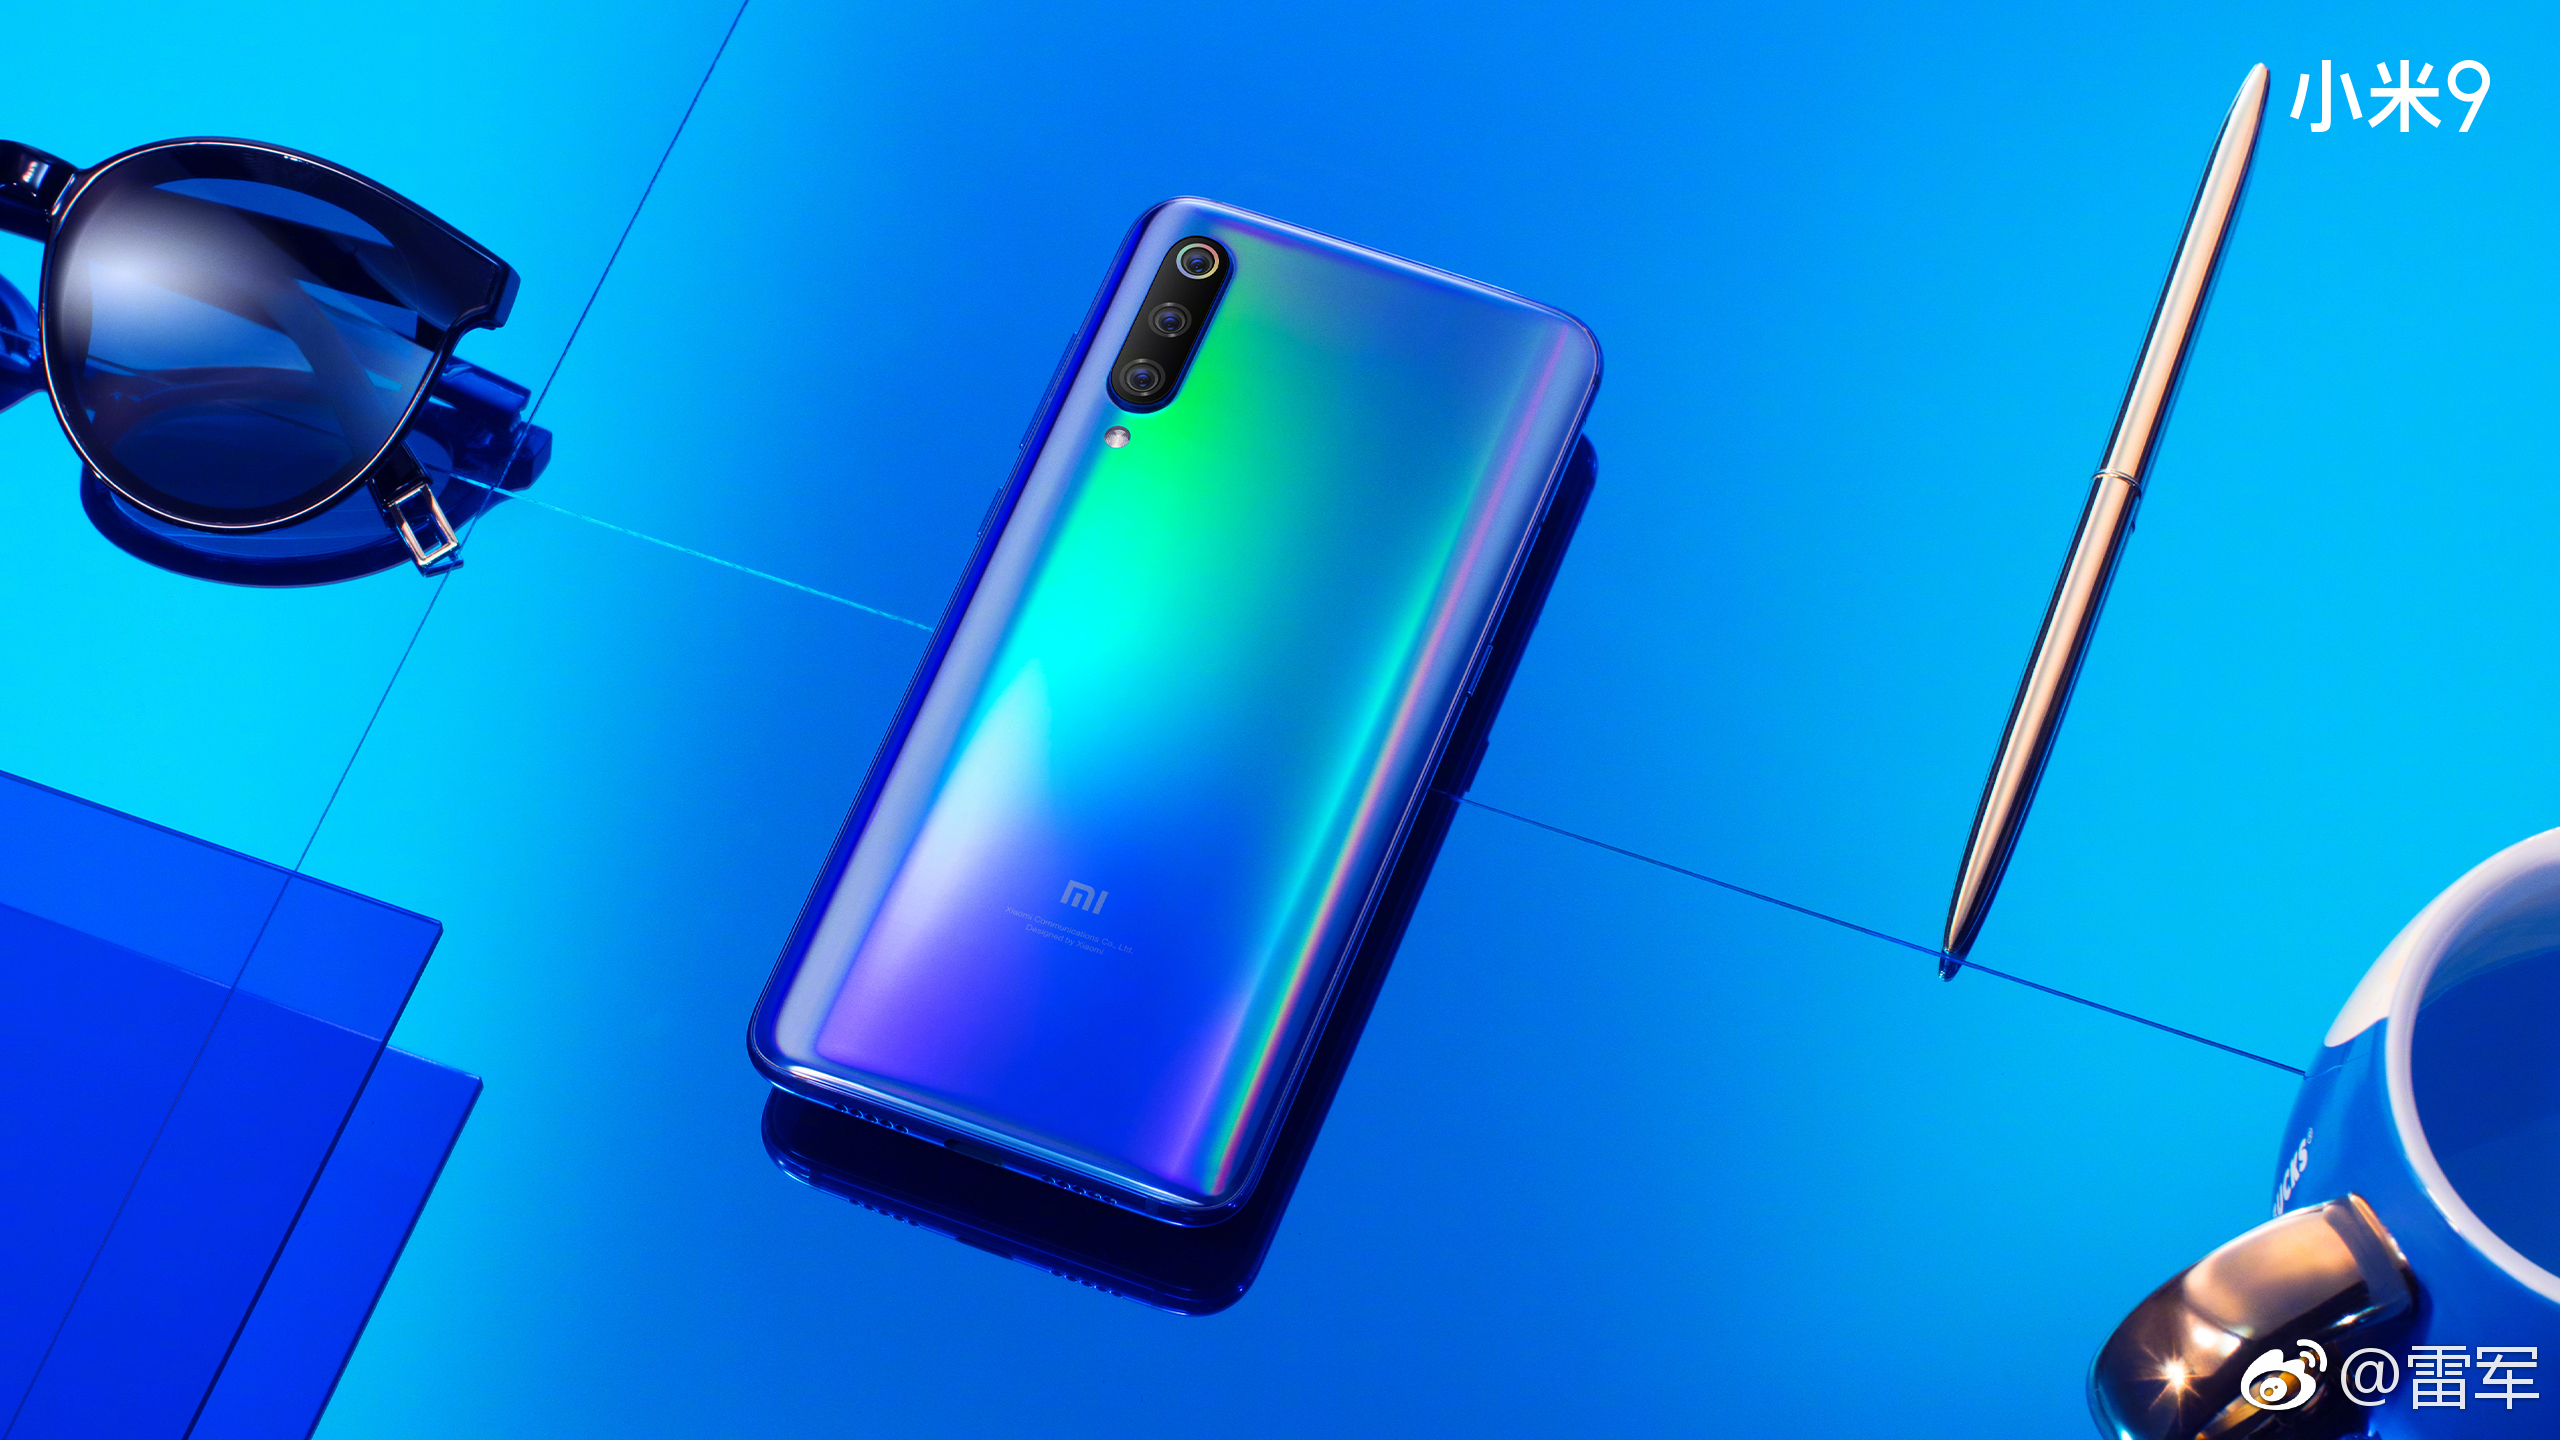 Xiaomi Mi 9 to come with Snapdragon 855 SoC: CEO confirms